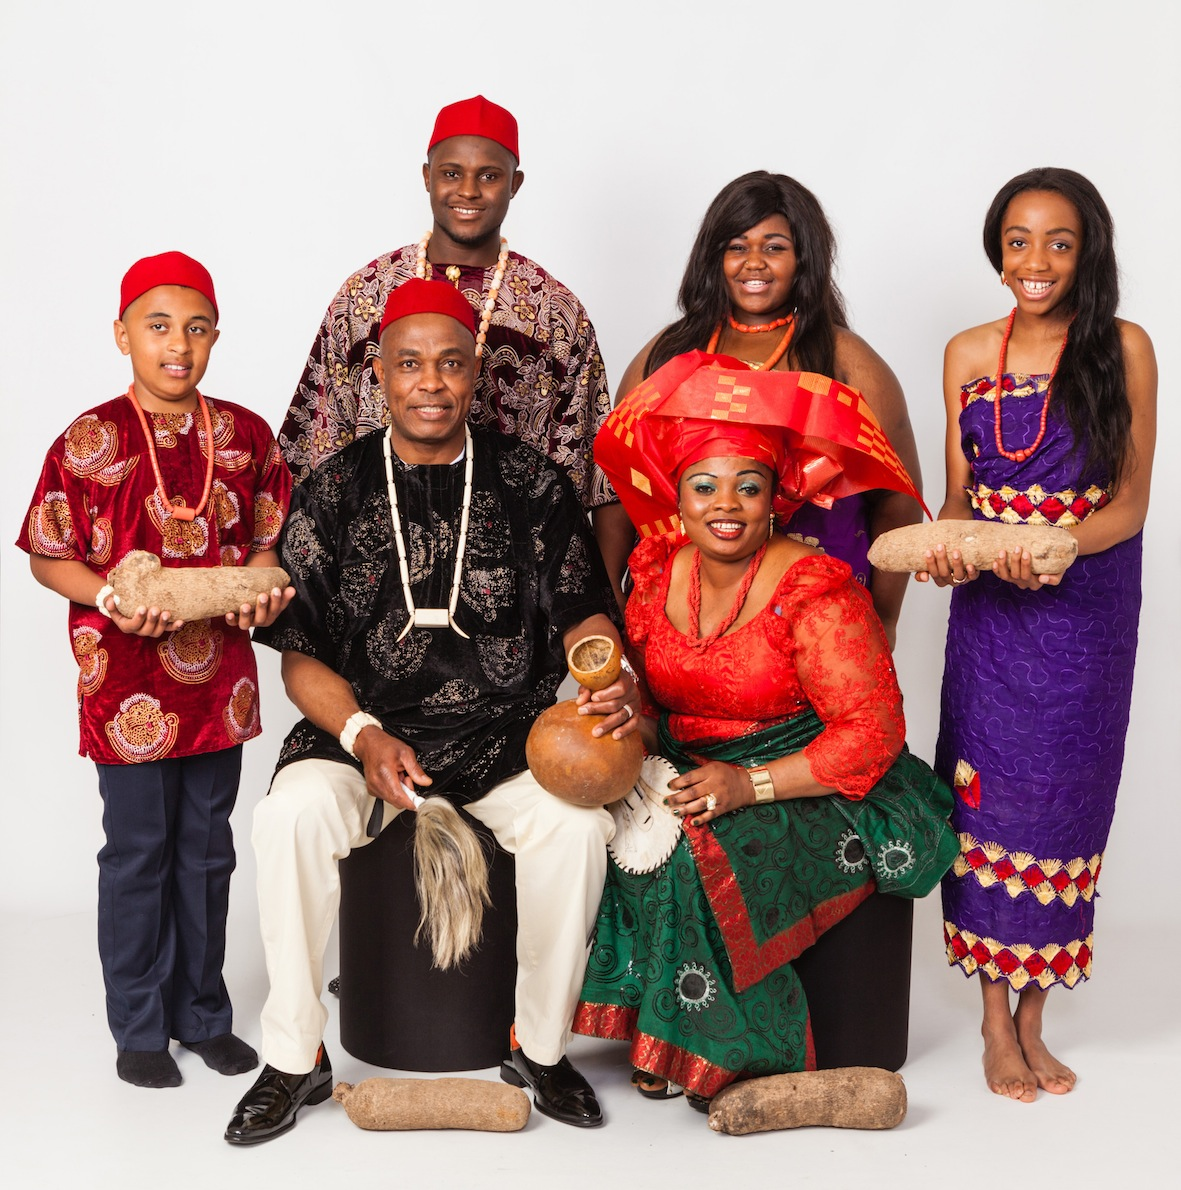 igbo culture History and origin of igbo people of nigeria igbo people, also referred to as the ibo(e), ebo(e),eboans or heebo (igbo: ndị igbọ) however, the engine of imperialism could not be stopped, and once it had begun, igbo culture would never be the same again 1.